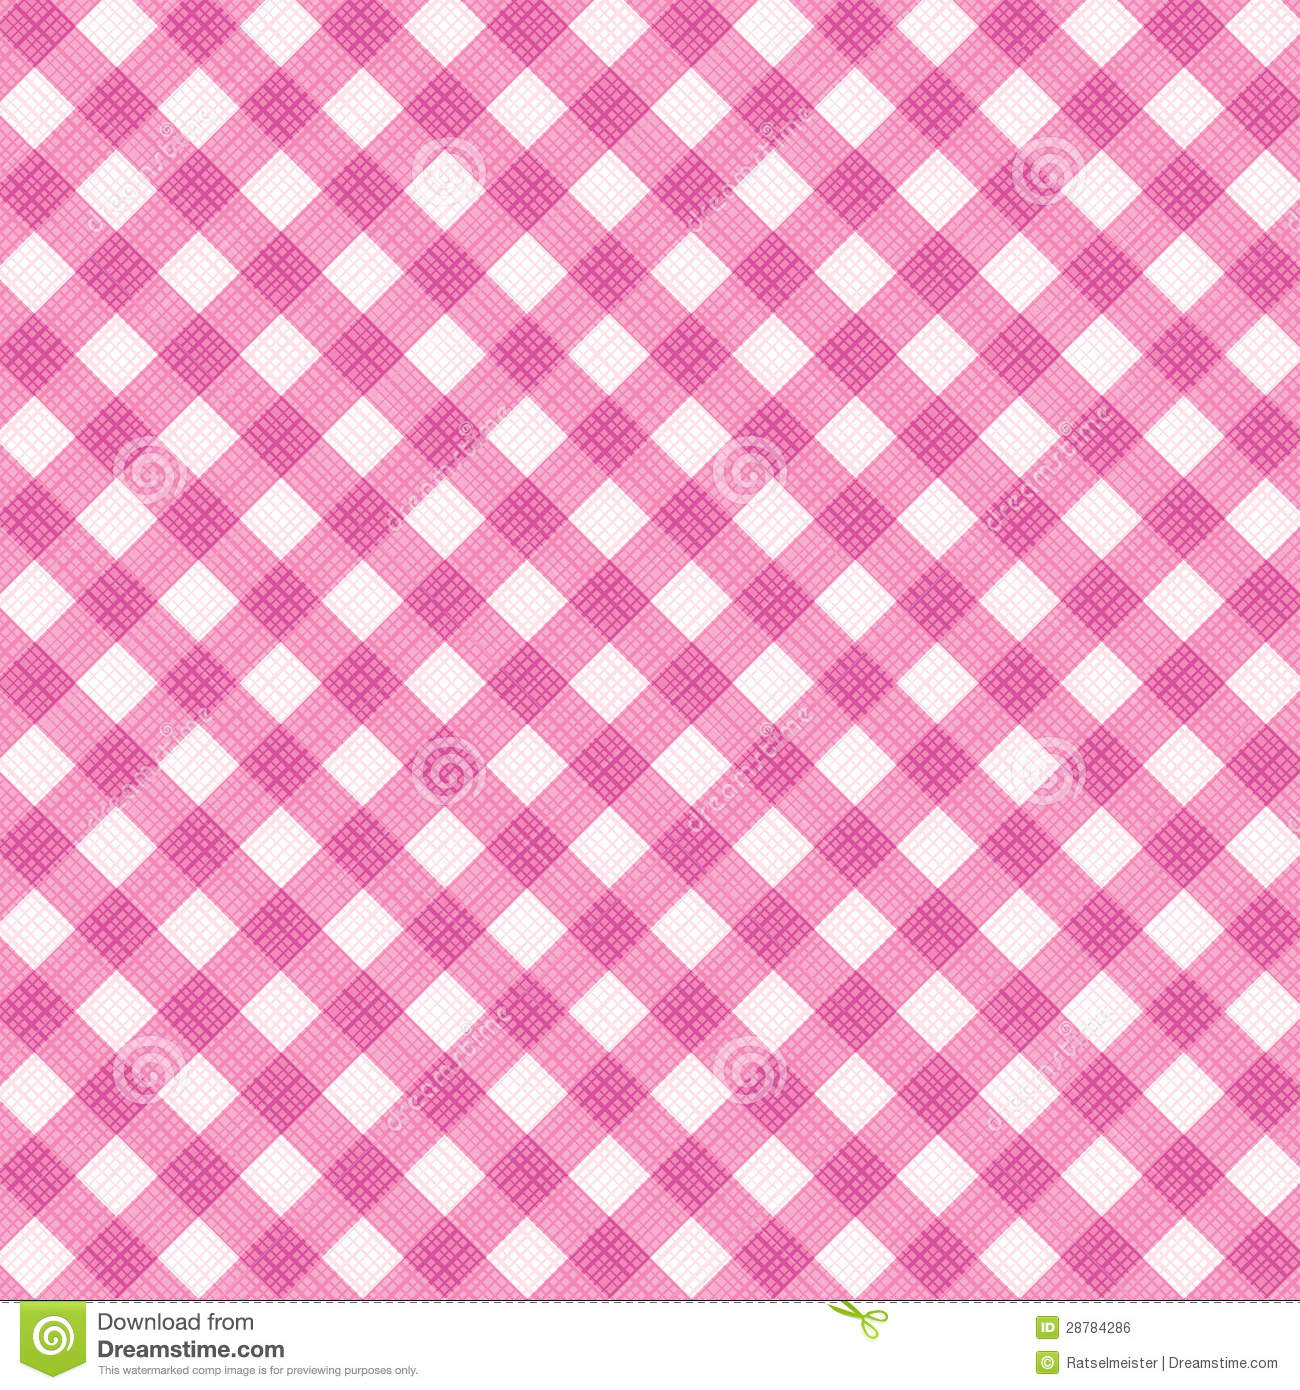 Pink Gingham Fabric Cloth Seamless Pattern Included Stock